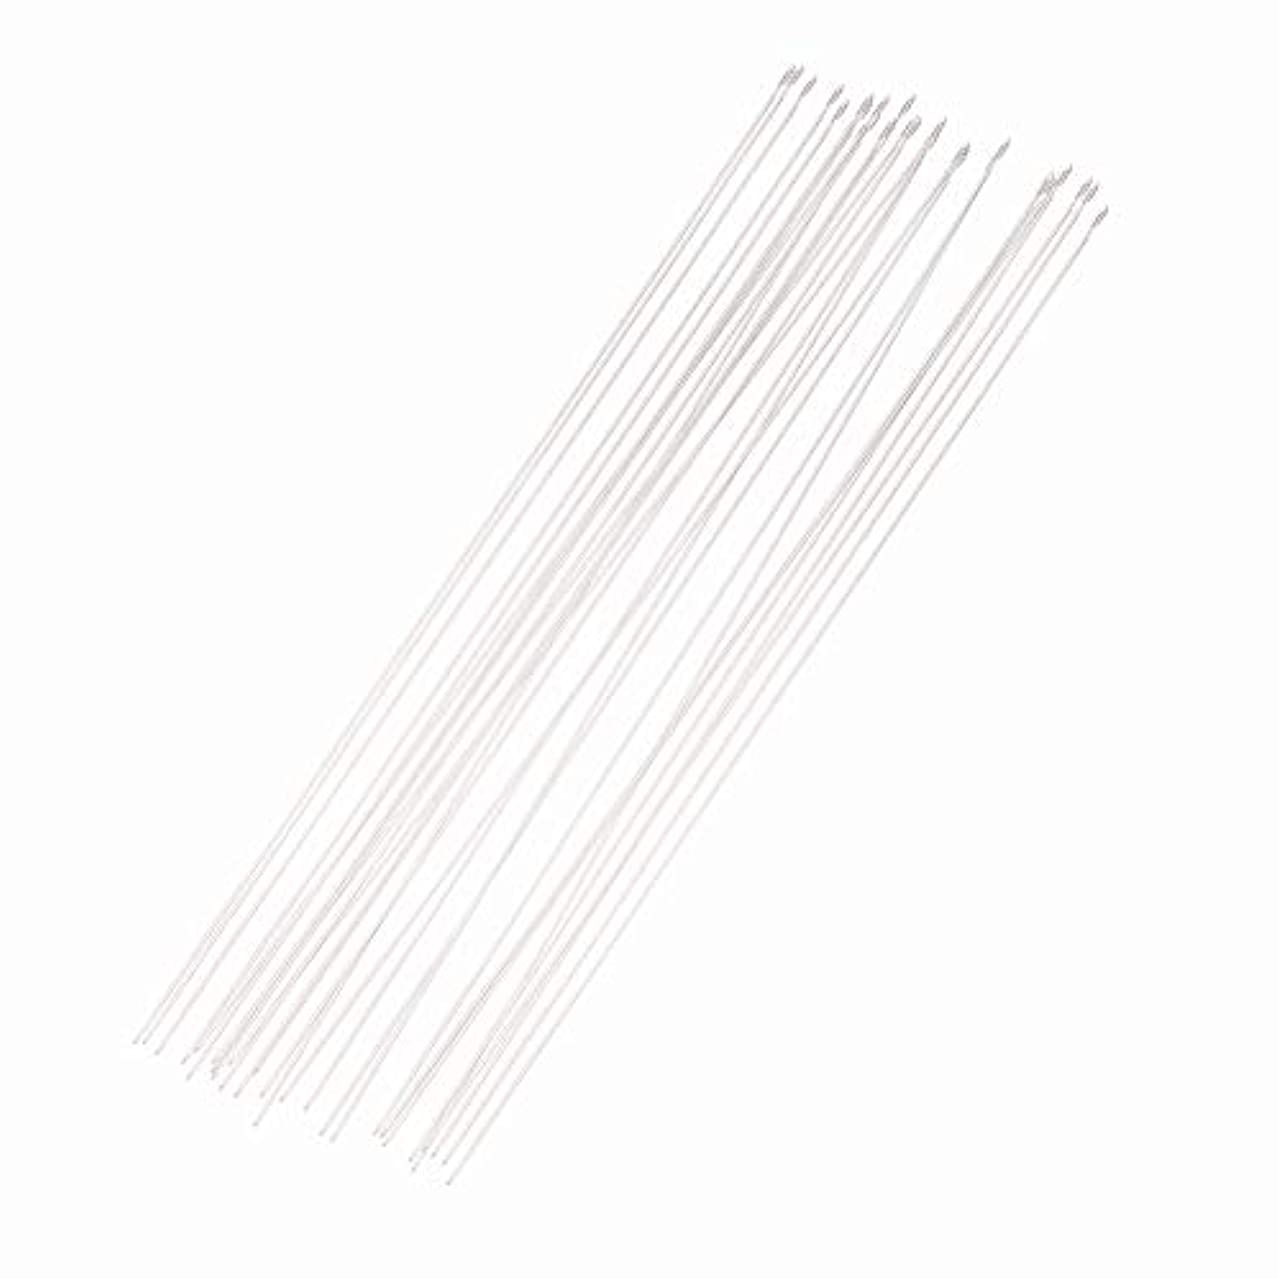 ARRICRAFT 5 Bag 150pcs Iron Beading Needles Threading String Cord Pins Hand Tools for DIY Jewellry Making, 120mm Long, Hole 0.5mm